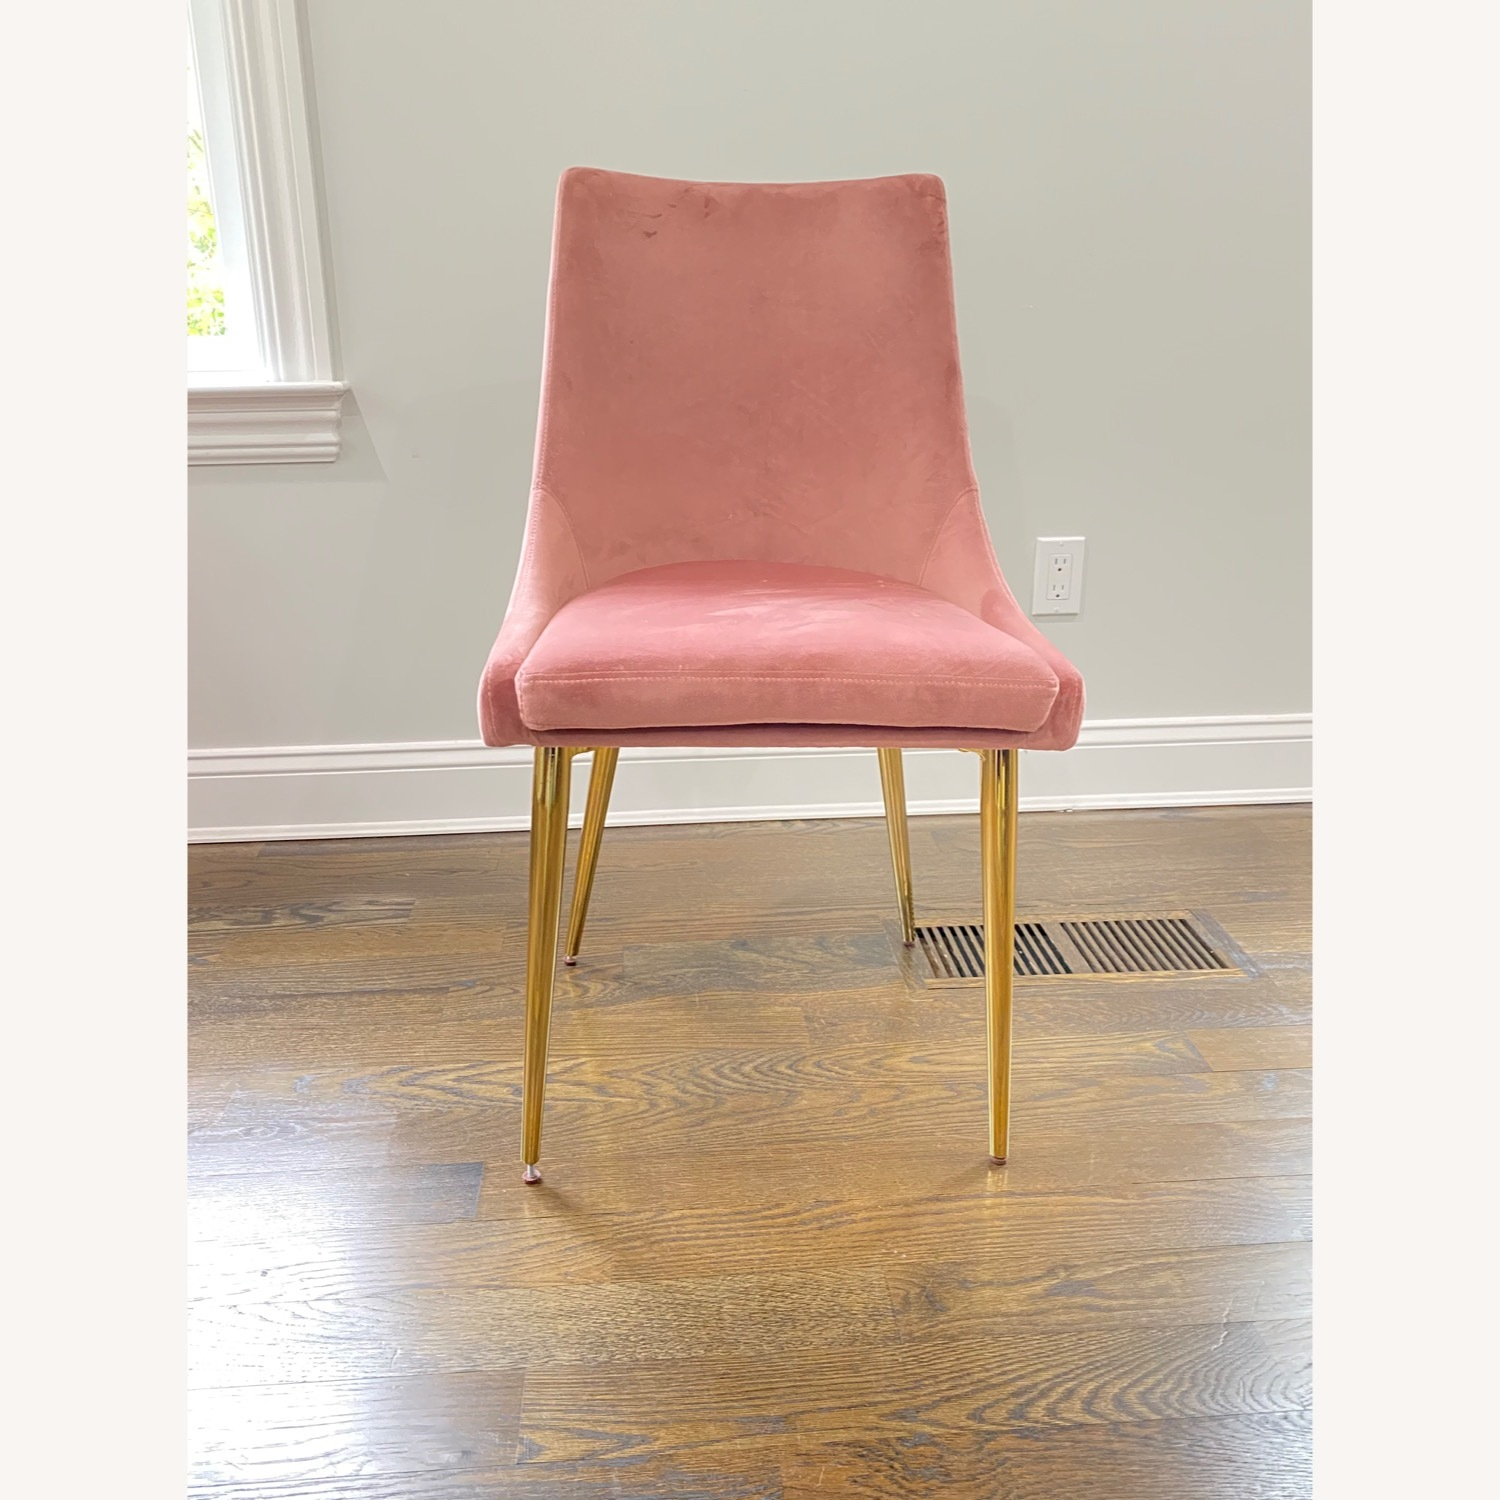 Modway Midcentury Velvet Dining Chairs Dusty Rose - image-3